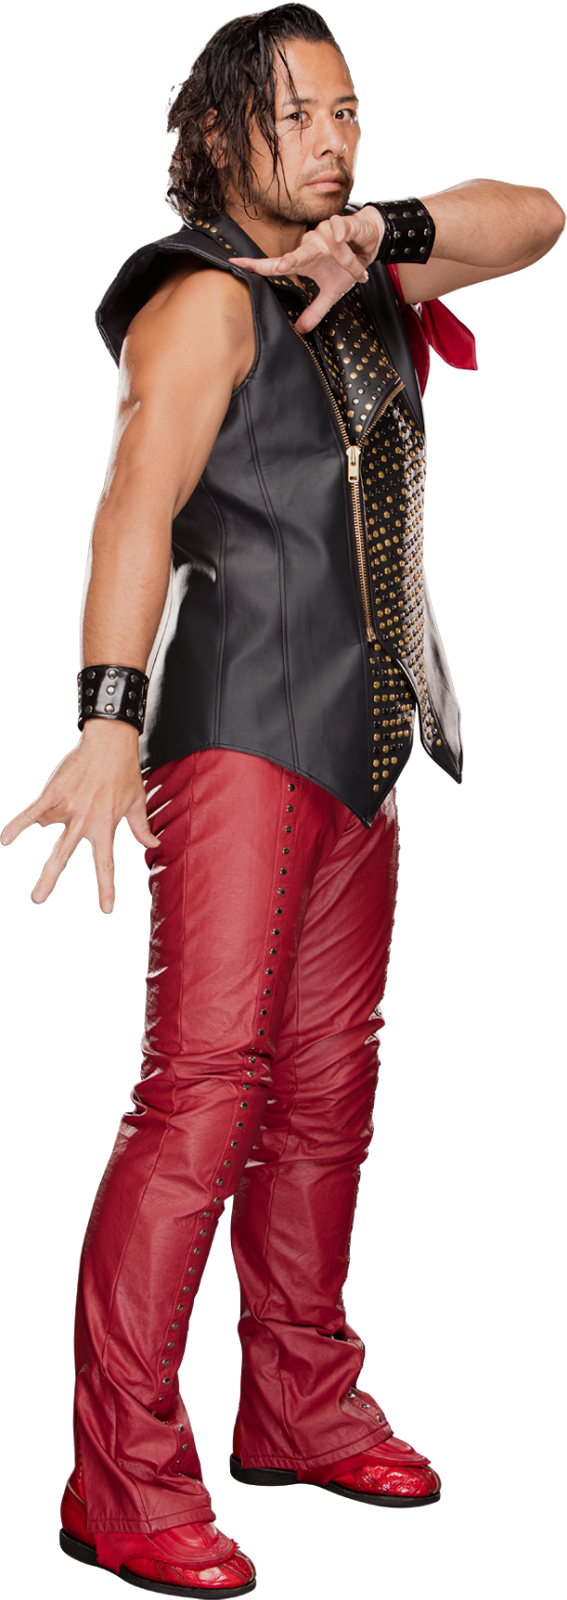 Renders Backgrounds LogoS: Shinsuke Nakamura